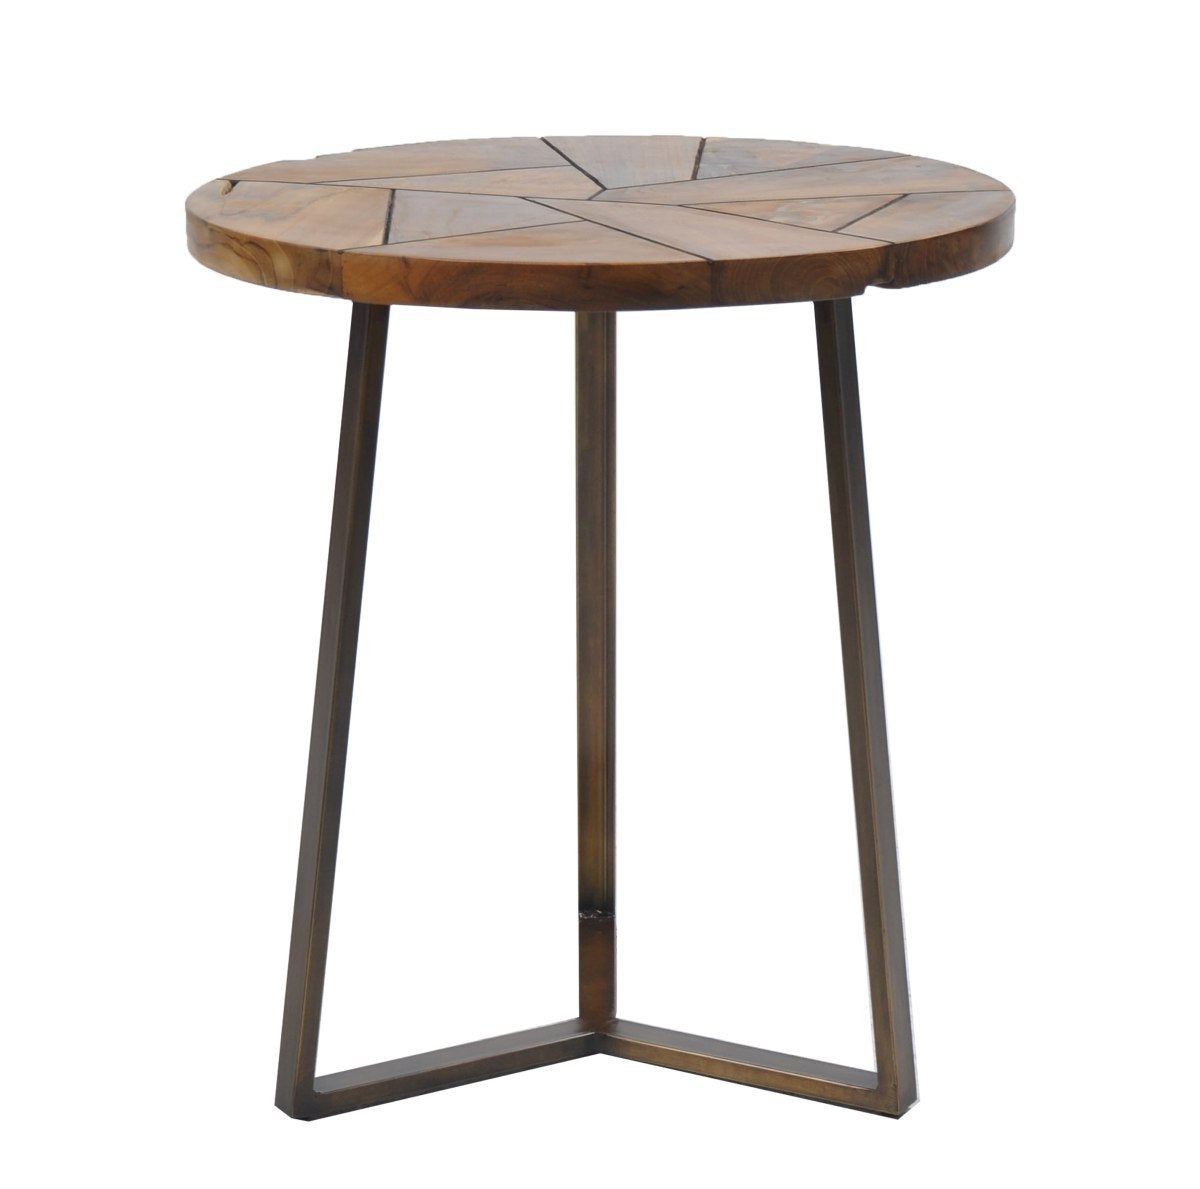 Flutted Side Table Round-fliphome.com.au